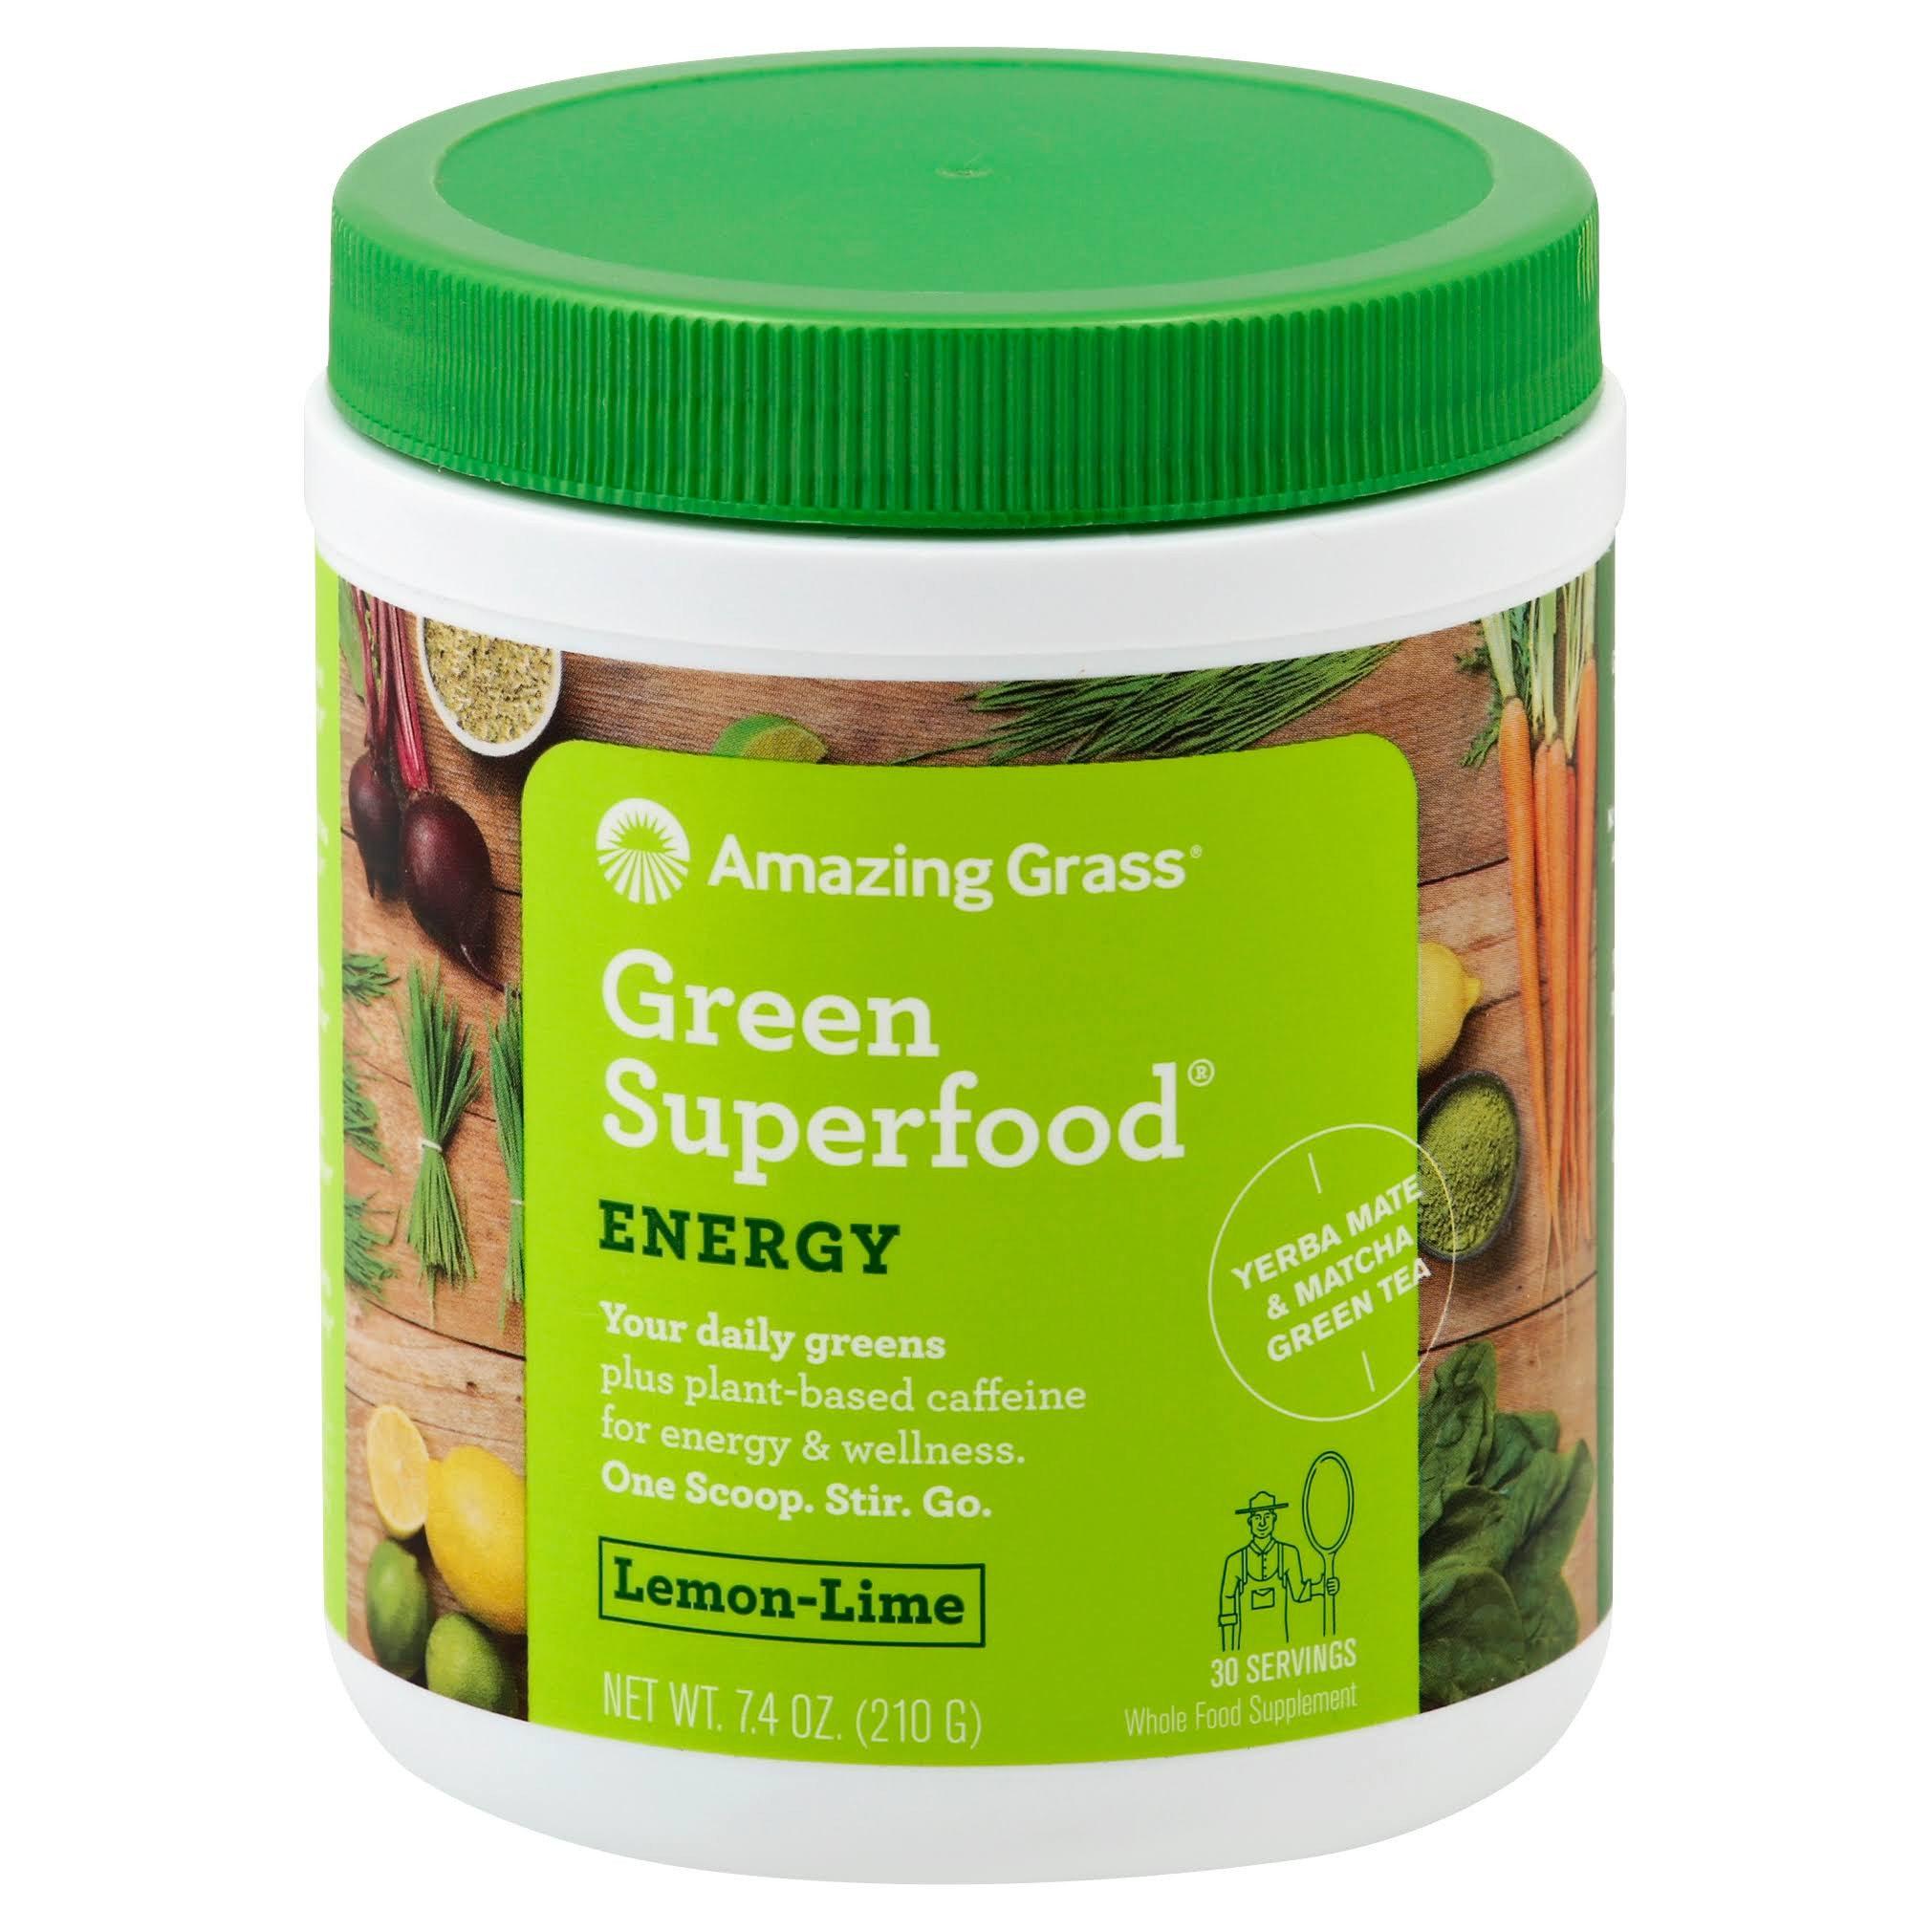 Amazing Grass Green SuperFood Drink Powder - Lemon/Lime, 210g